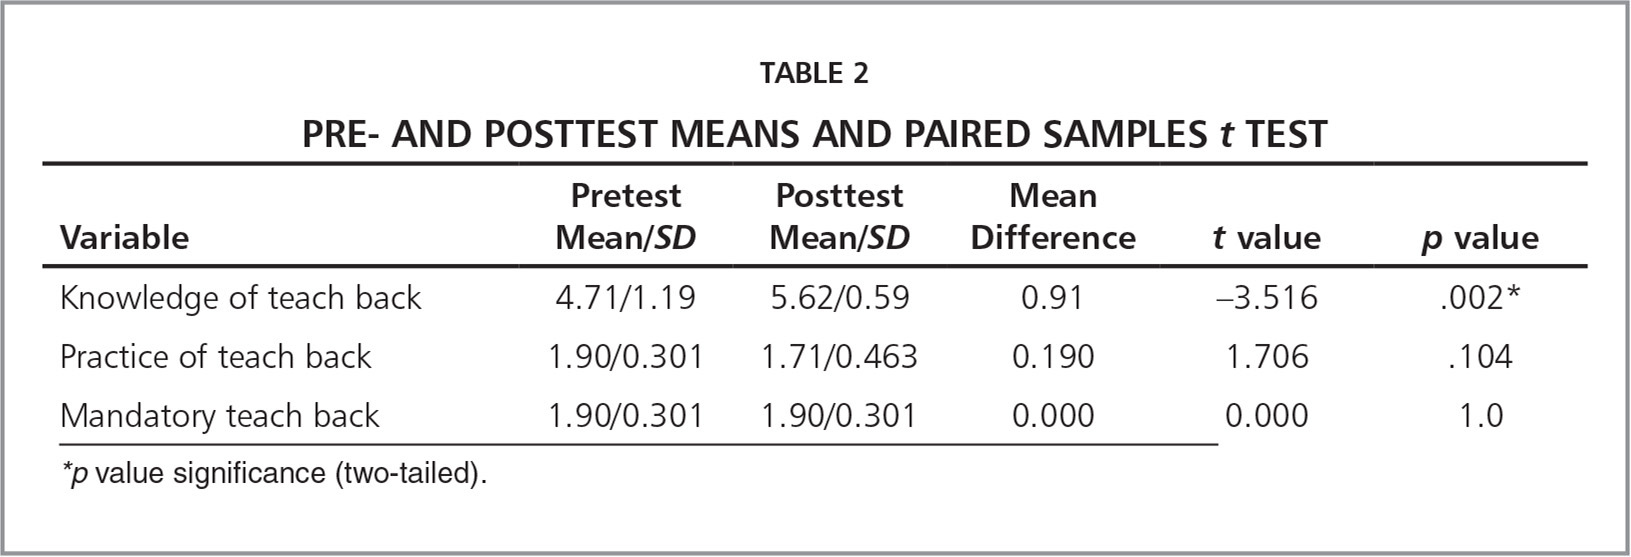 Pre- and Posttest Means and Paired Samples t Test